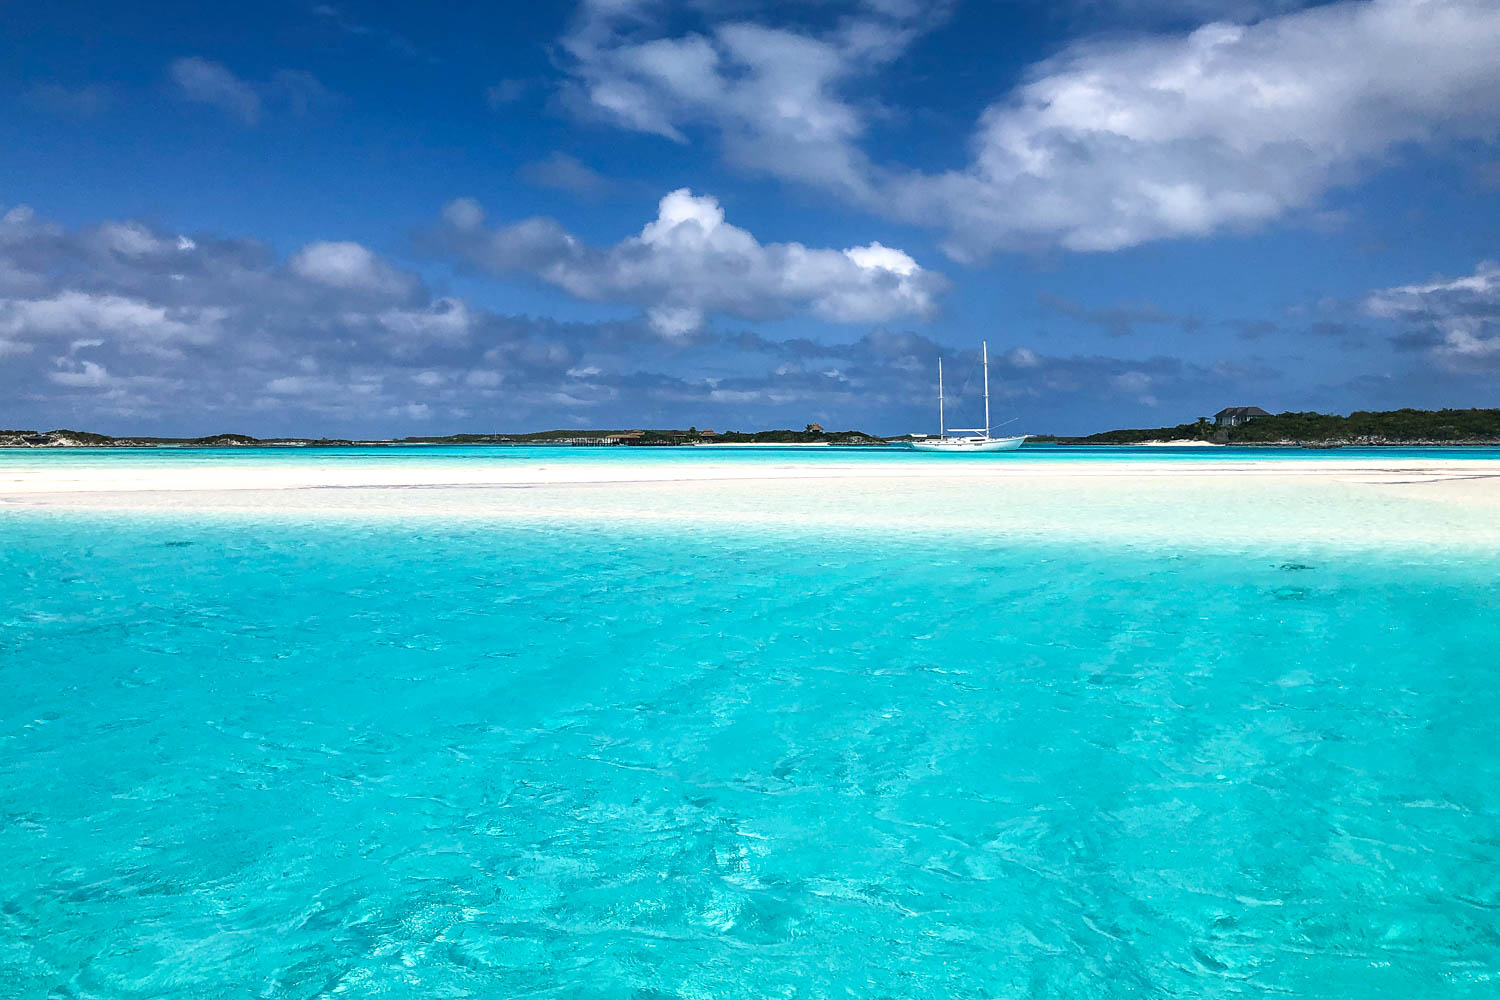 Staniel Cay Sand Bar Bahamas is a stunning stretch of white sand, hidden by the rising tide it is located in the Exuma Cays at Pipe Creek, between Compass Cay and Staniel Cay.